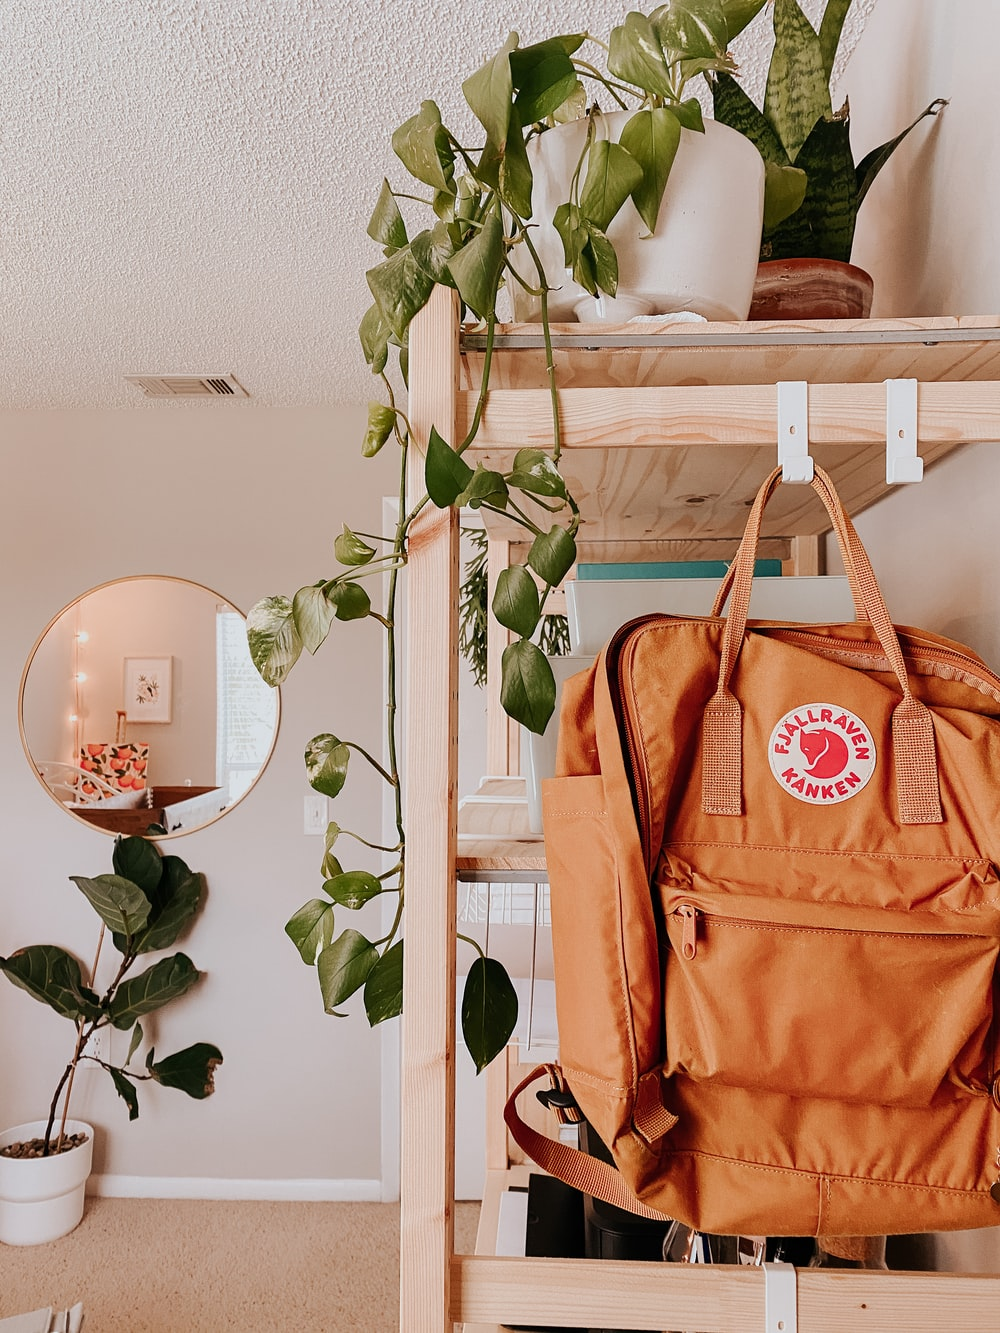 brown leather tote bag hanged on white wooden rack